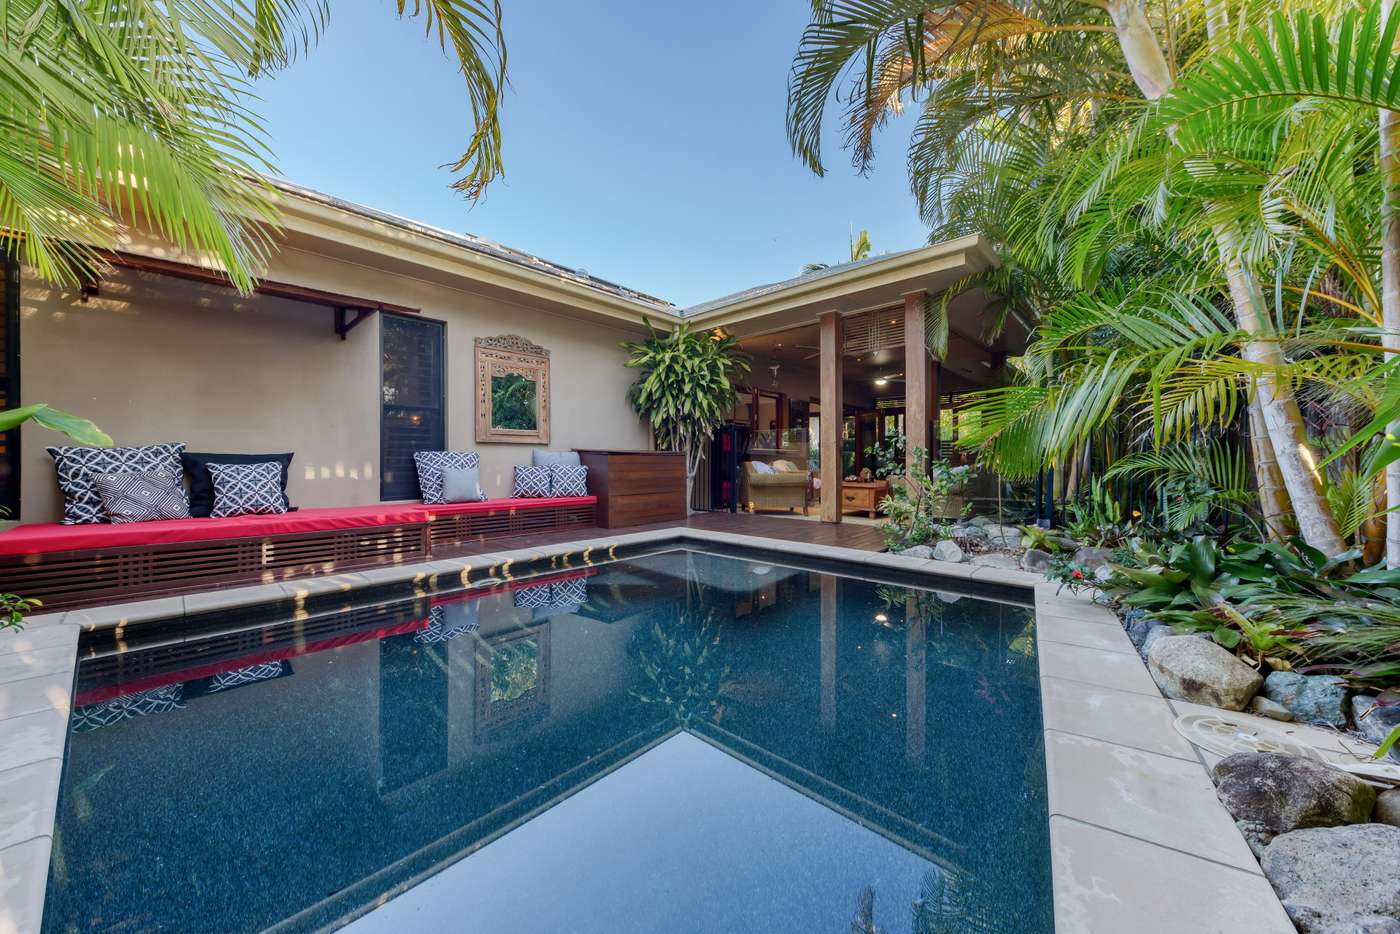 Main view of Homely house listing, 4 Pennant Court, Peregian Springs QLD 4573